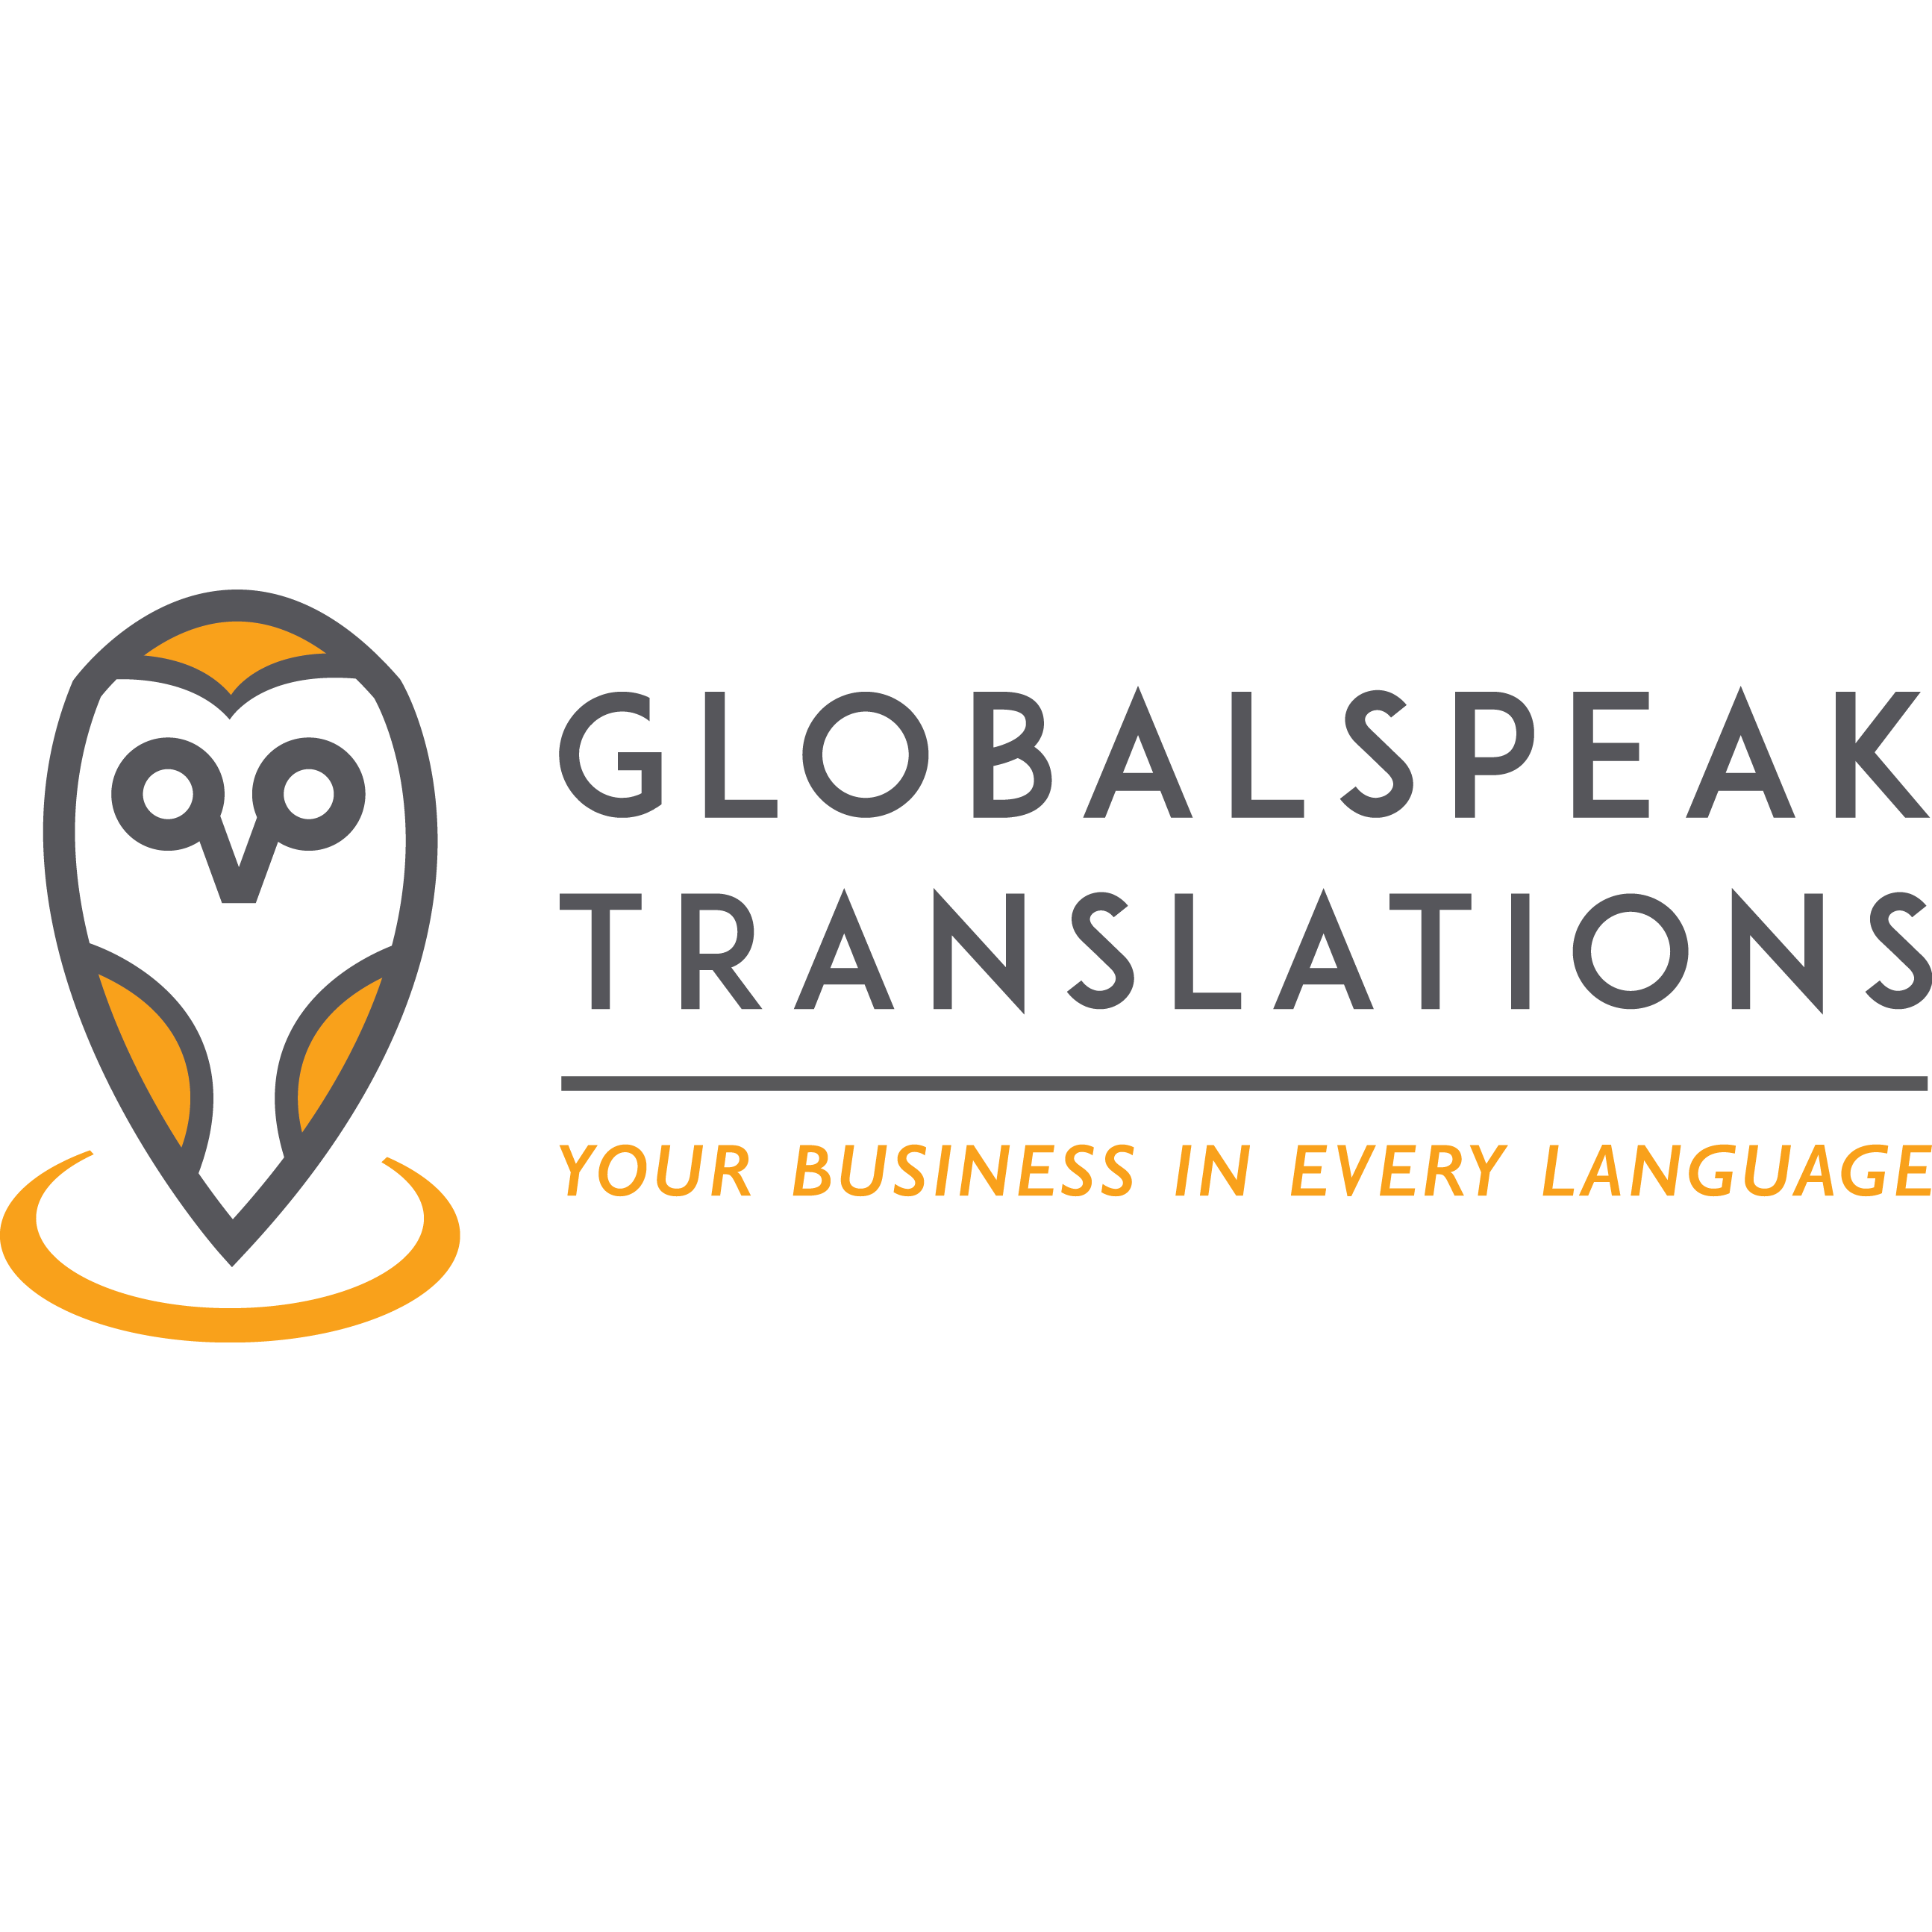 GlobalSpeak Translations - Louisiana office